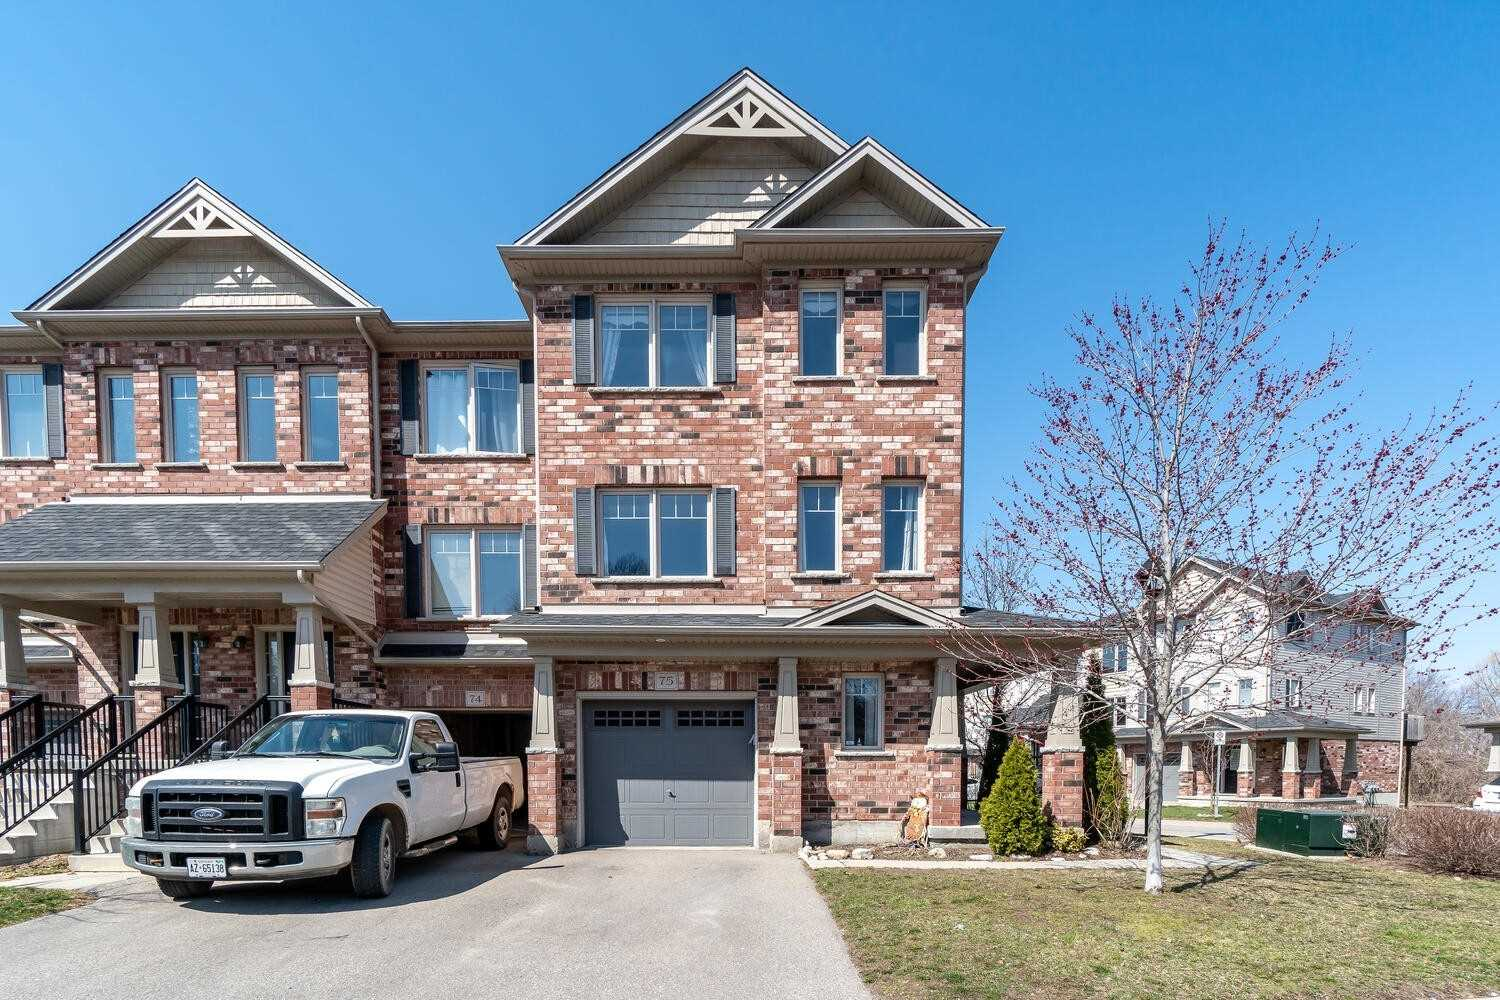 750 Lawrence St, Cambridge, Ontario N3H 0A9, 3 Bedrooms Bedrooms, ,3 BathroomsBathrooms,Condo Townhouse,For Sale,Lawrence,X5181704